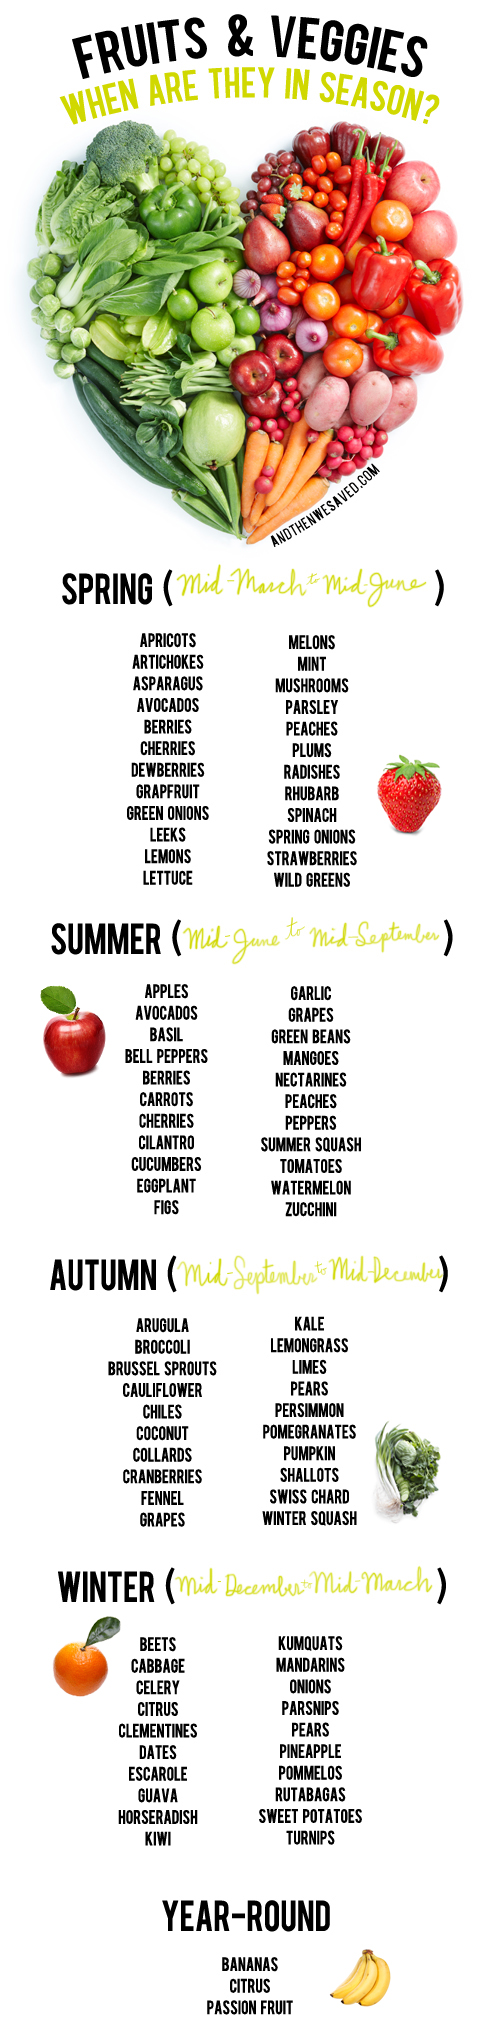 Fruits In Season Photos Download Jpg Png Gif Raw Tiff Psd Pdf And Watch Online